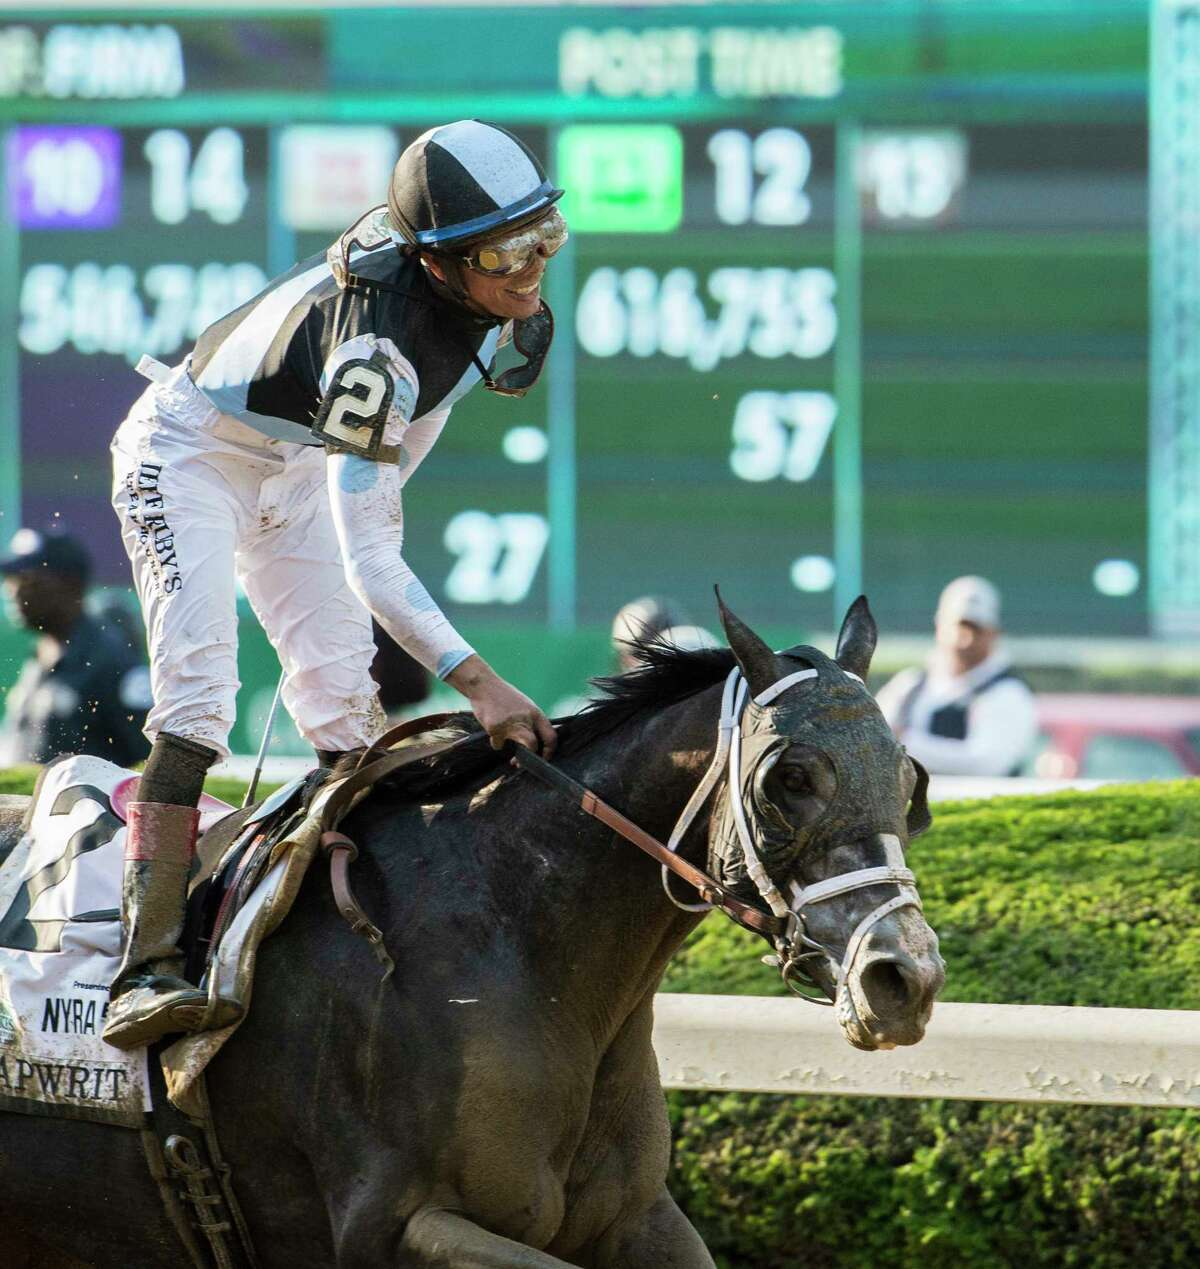 Jockey Jose Ortiz is all smiles after ridding Tapwrit to the win in the 149th running of the Belmont Stakes at Belmont Park June 10, 2017 in Elmont, N.Y. (Skip Dickstein/Times Union)